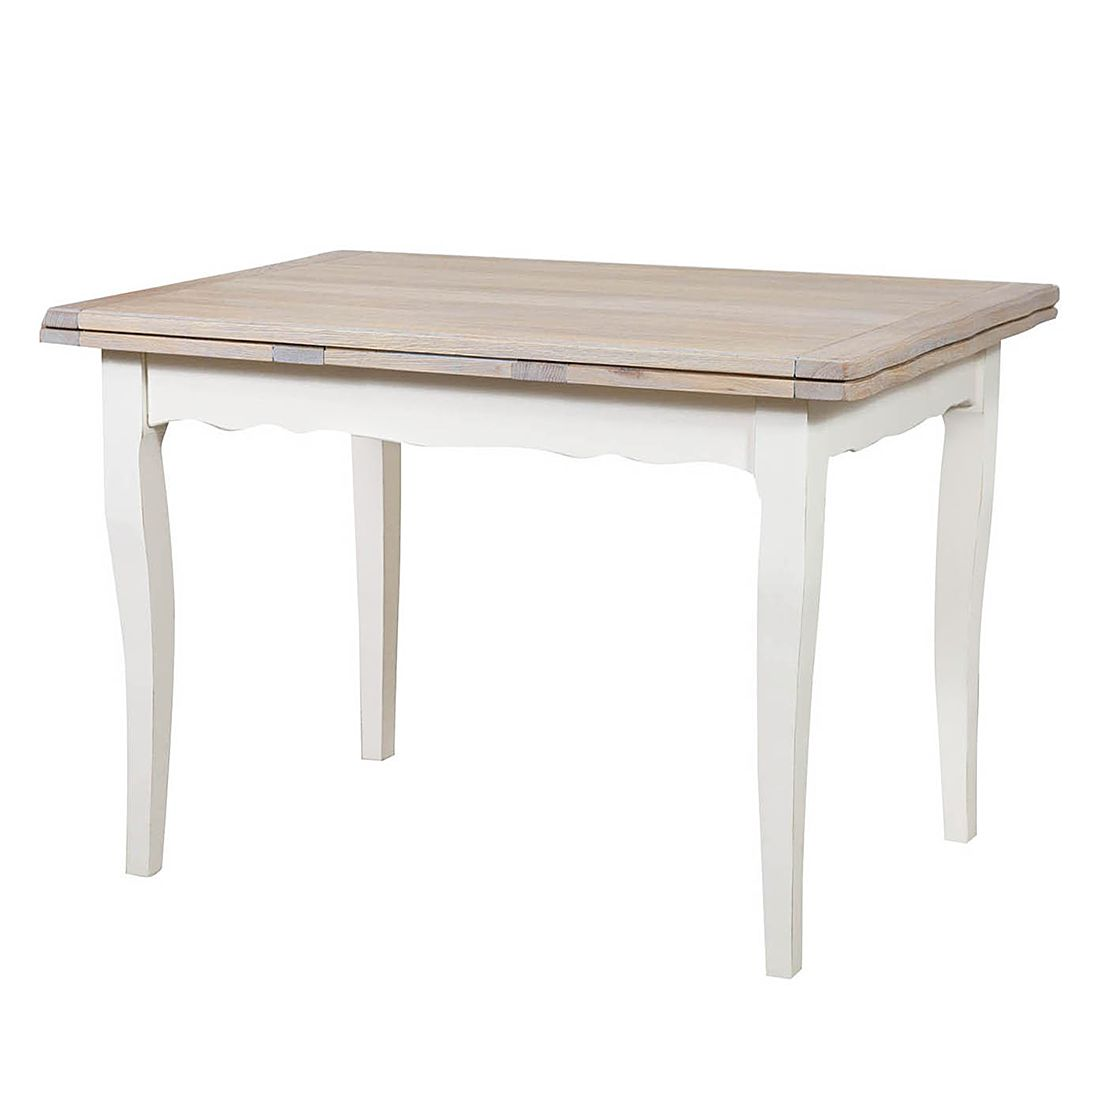 Meubles salle manger tables de salle manger le for Table extractible